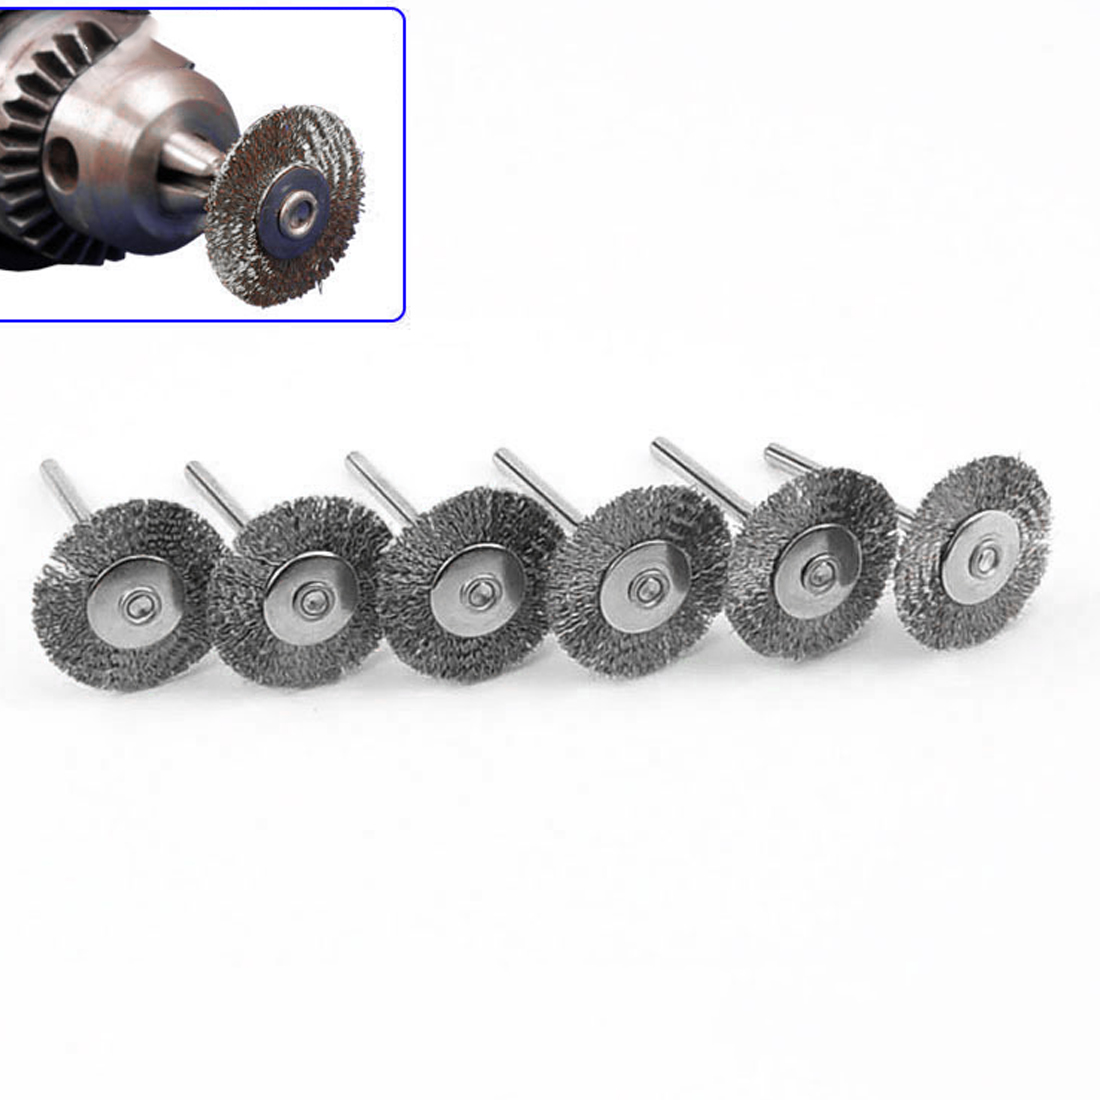 New 10Pcs Dremel Accessories 22mm Steel Rotary Brush Dremel Wire Wheel Brushes For Grinder Rotary Tool For Mini Drill Polishing